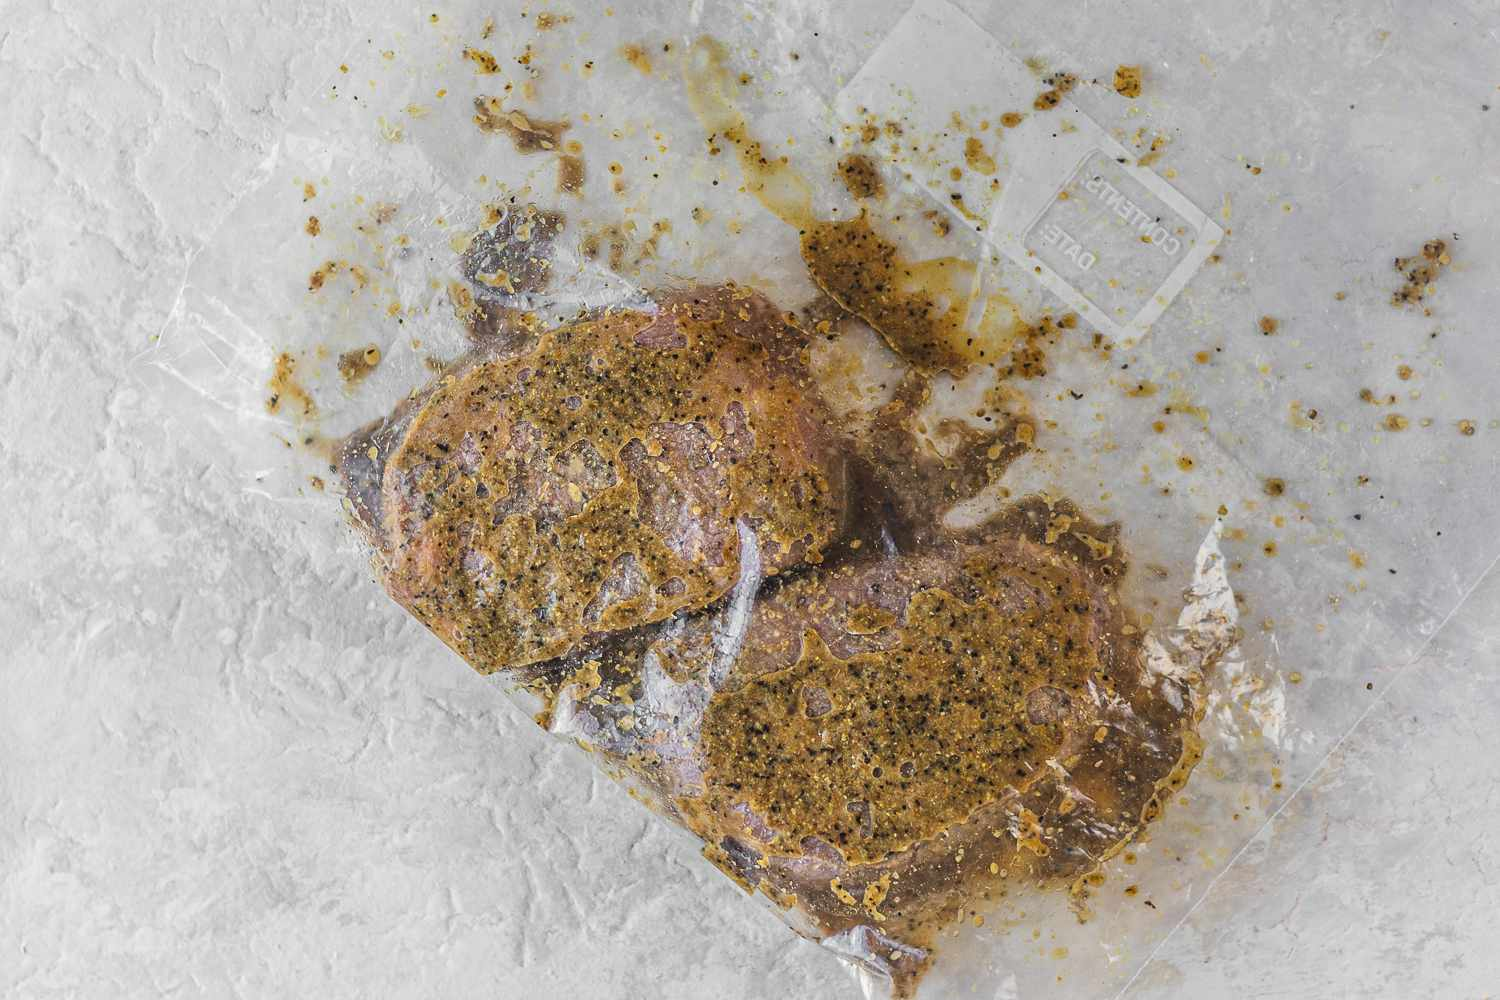 Place the steaks in a resealable plastic bag and pour the marinade over the steaks